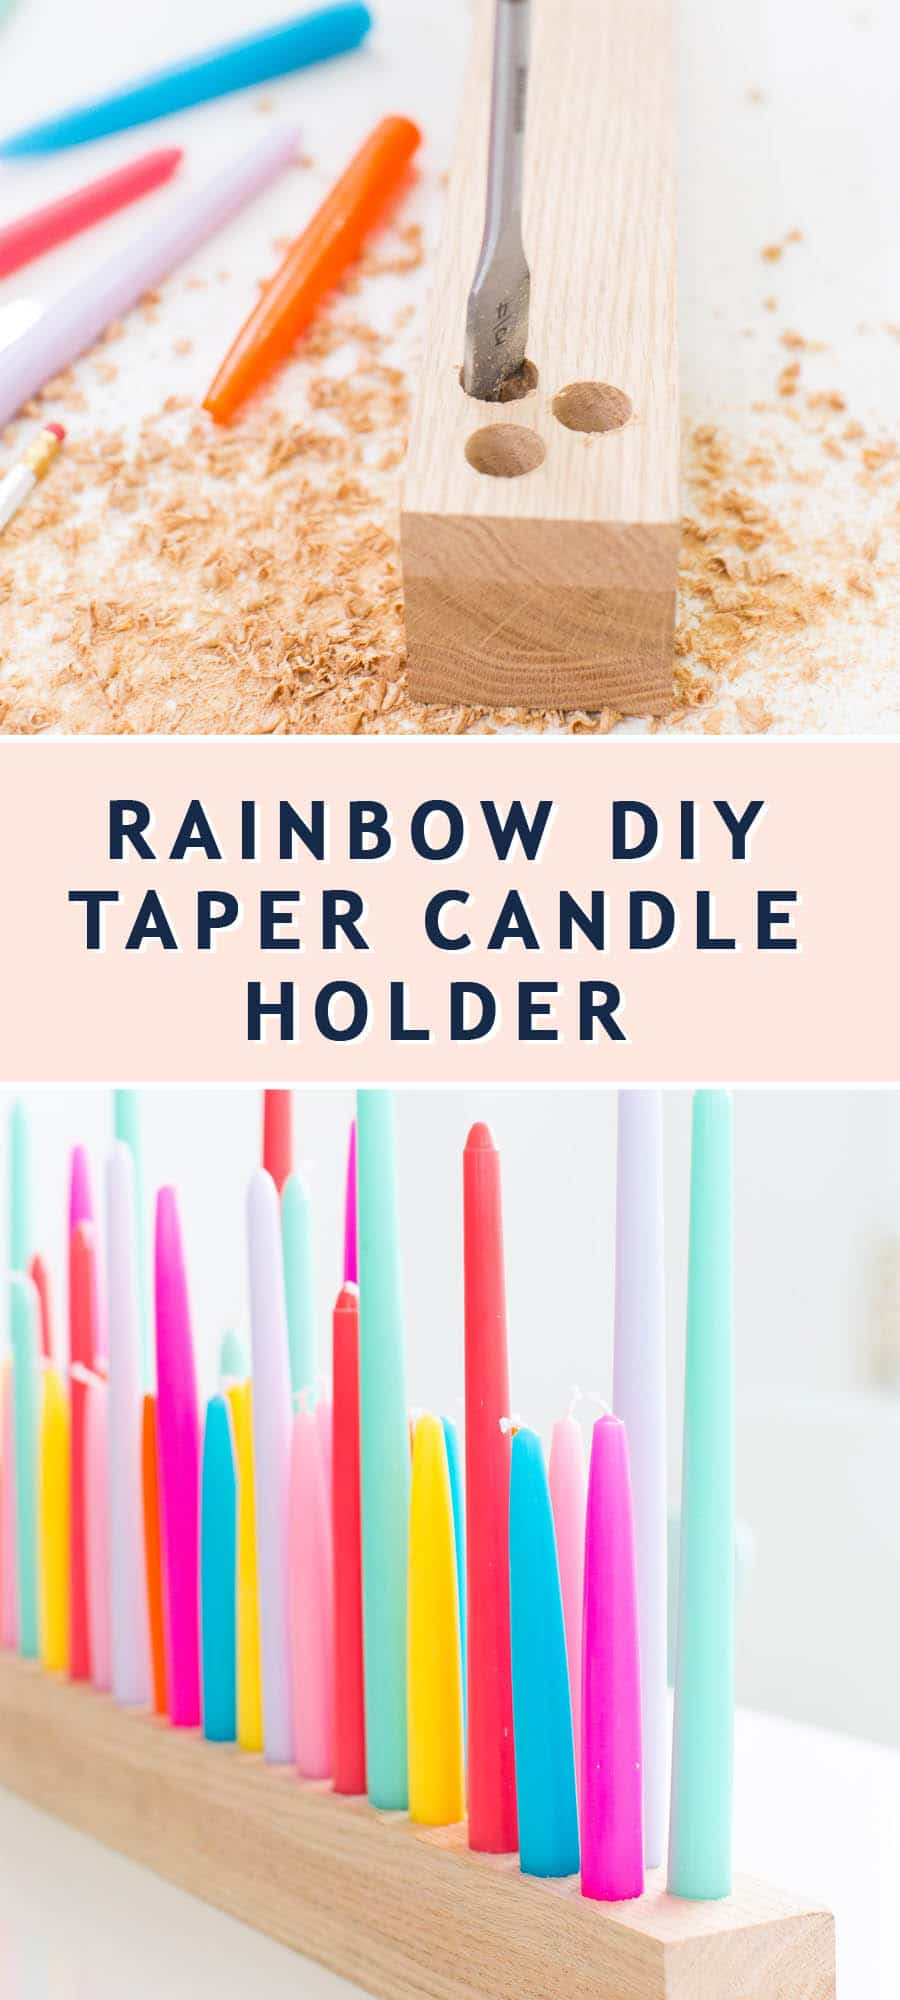 photo of how to make a Rainbow DIY Taper Candle Holder by top Houston lifestyle blogger Ashley Rose of Sugar & Cloth